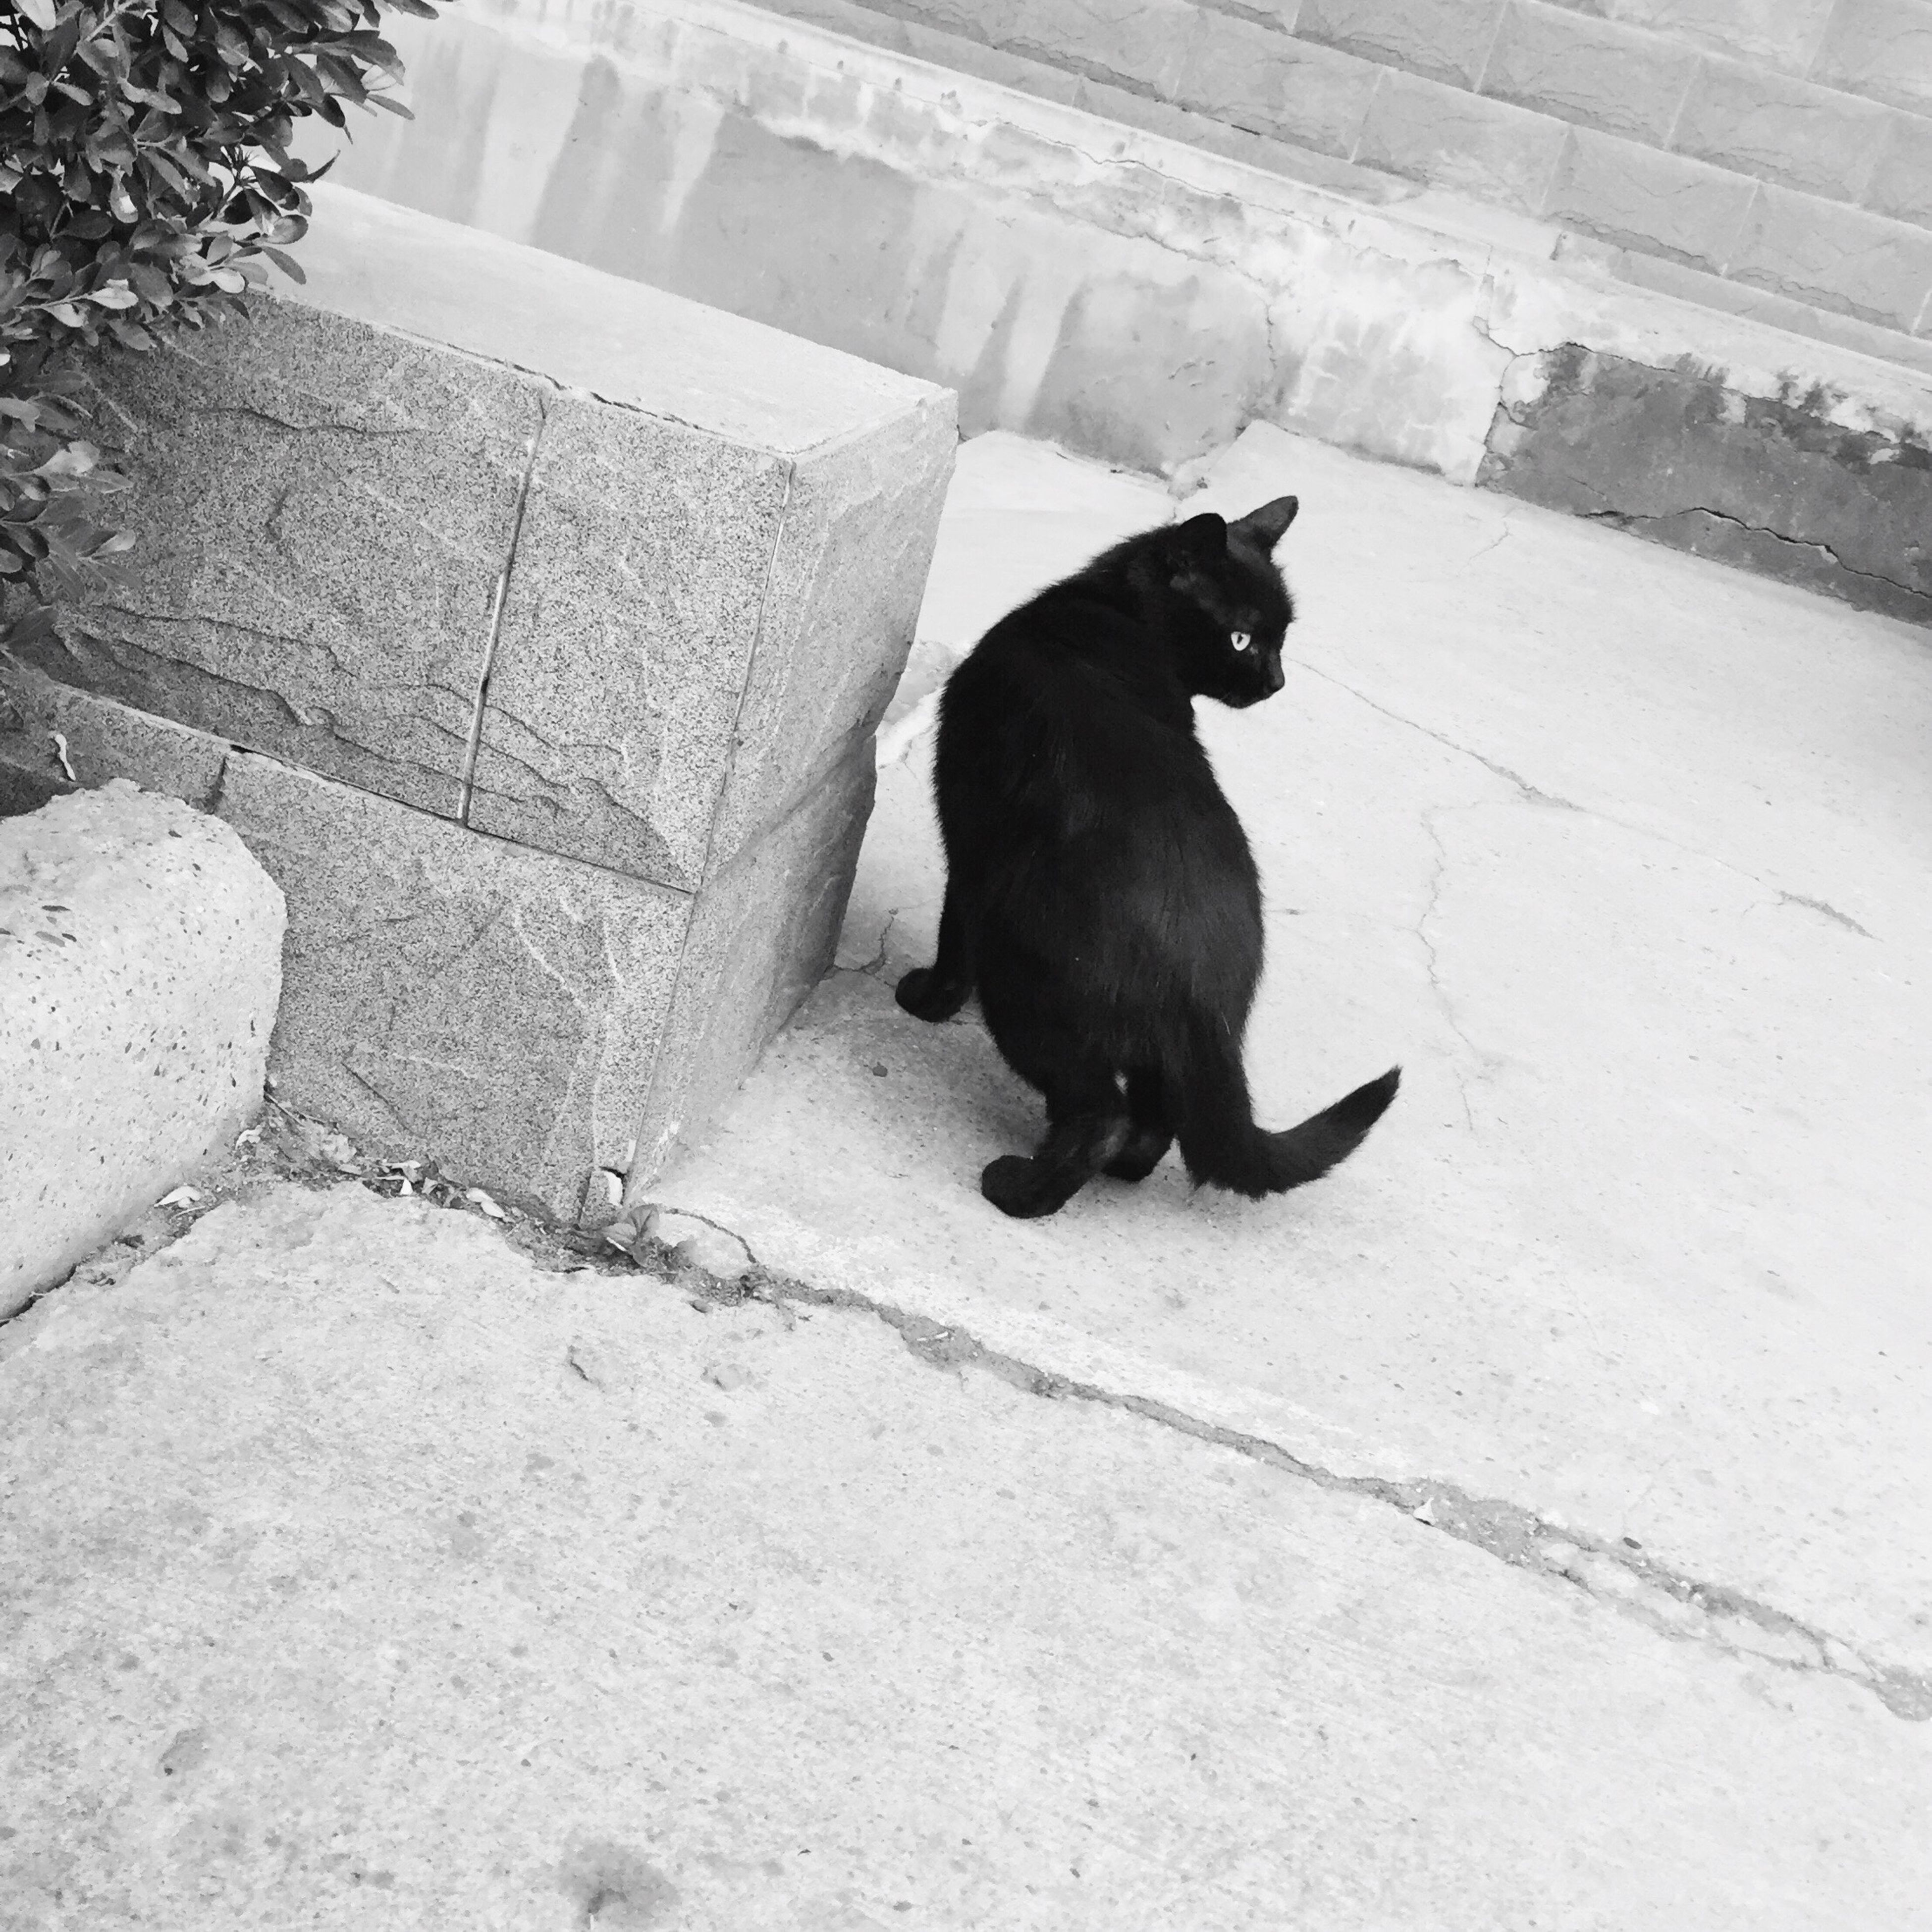 animal themes, one animal, domestic animals, pets, mammal, black color, domestic cat, cat, dog, high angle view, full length, feline, sitting, zoology, relaxation, no people, looking at camera, black, outdoors, vertebrate